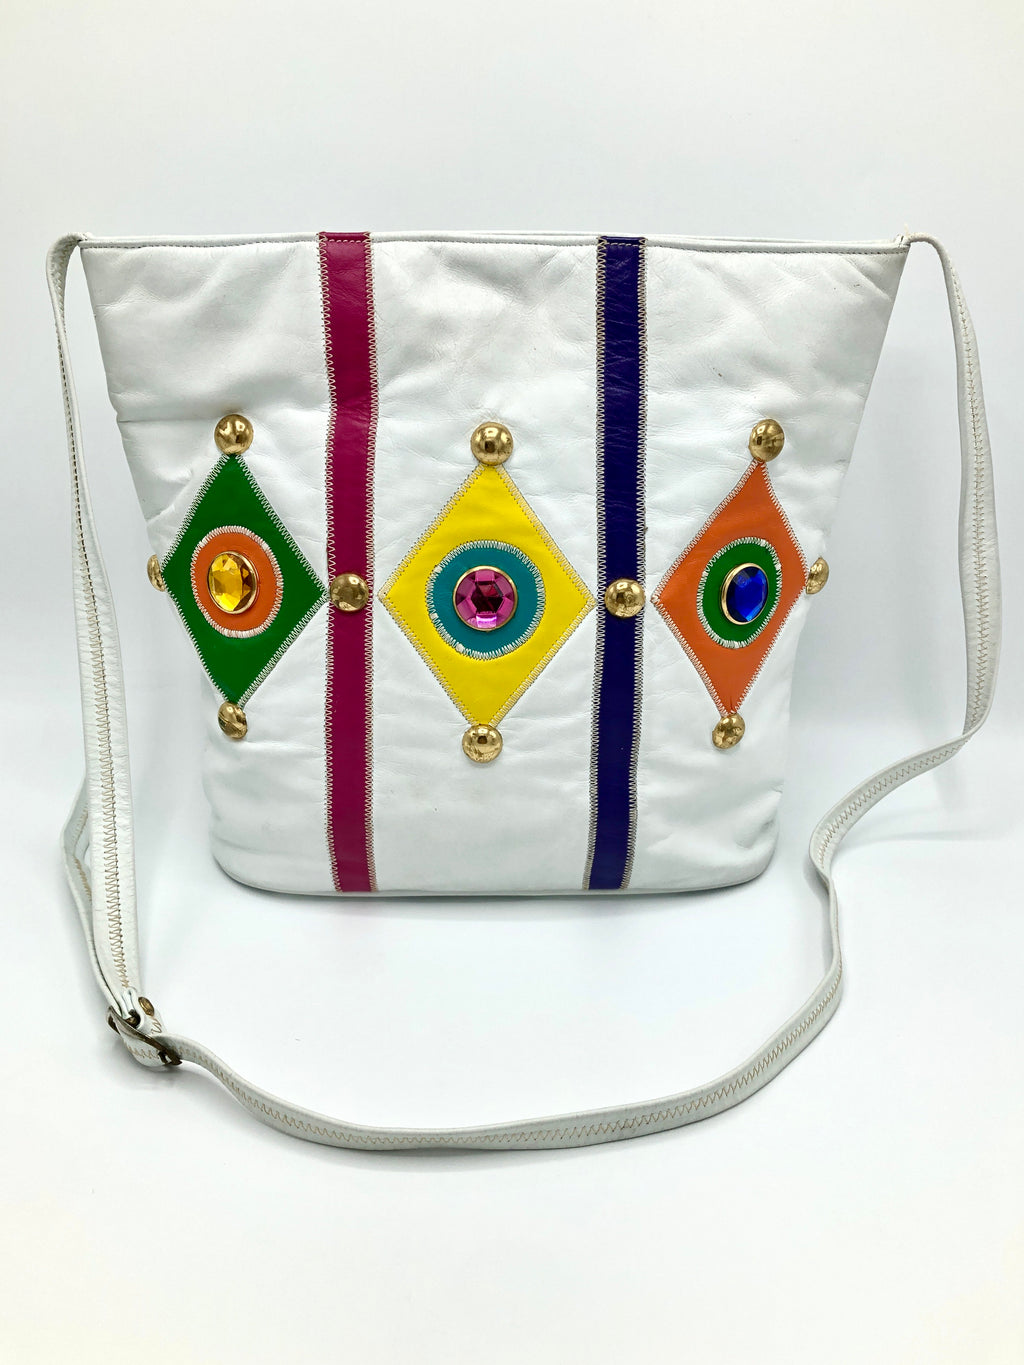 Vintage Multicolor Genuine Leather Bag